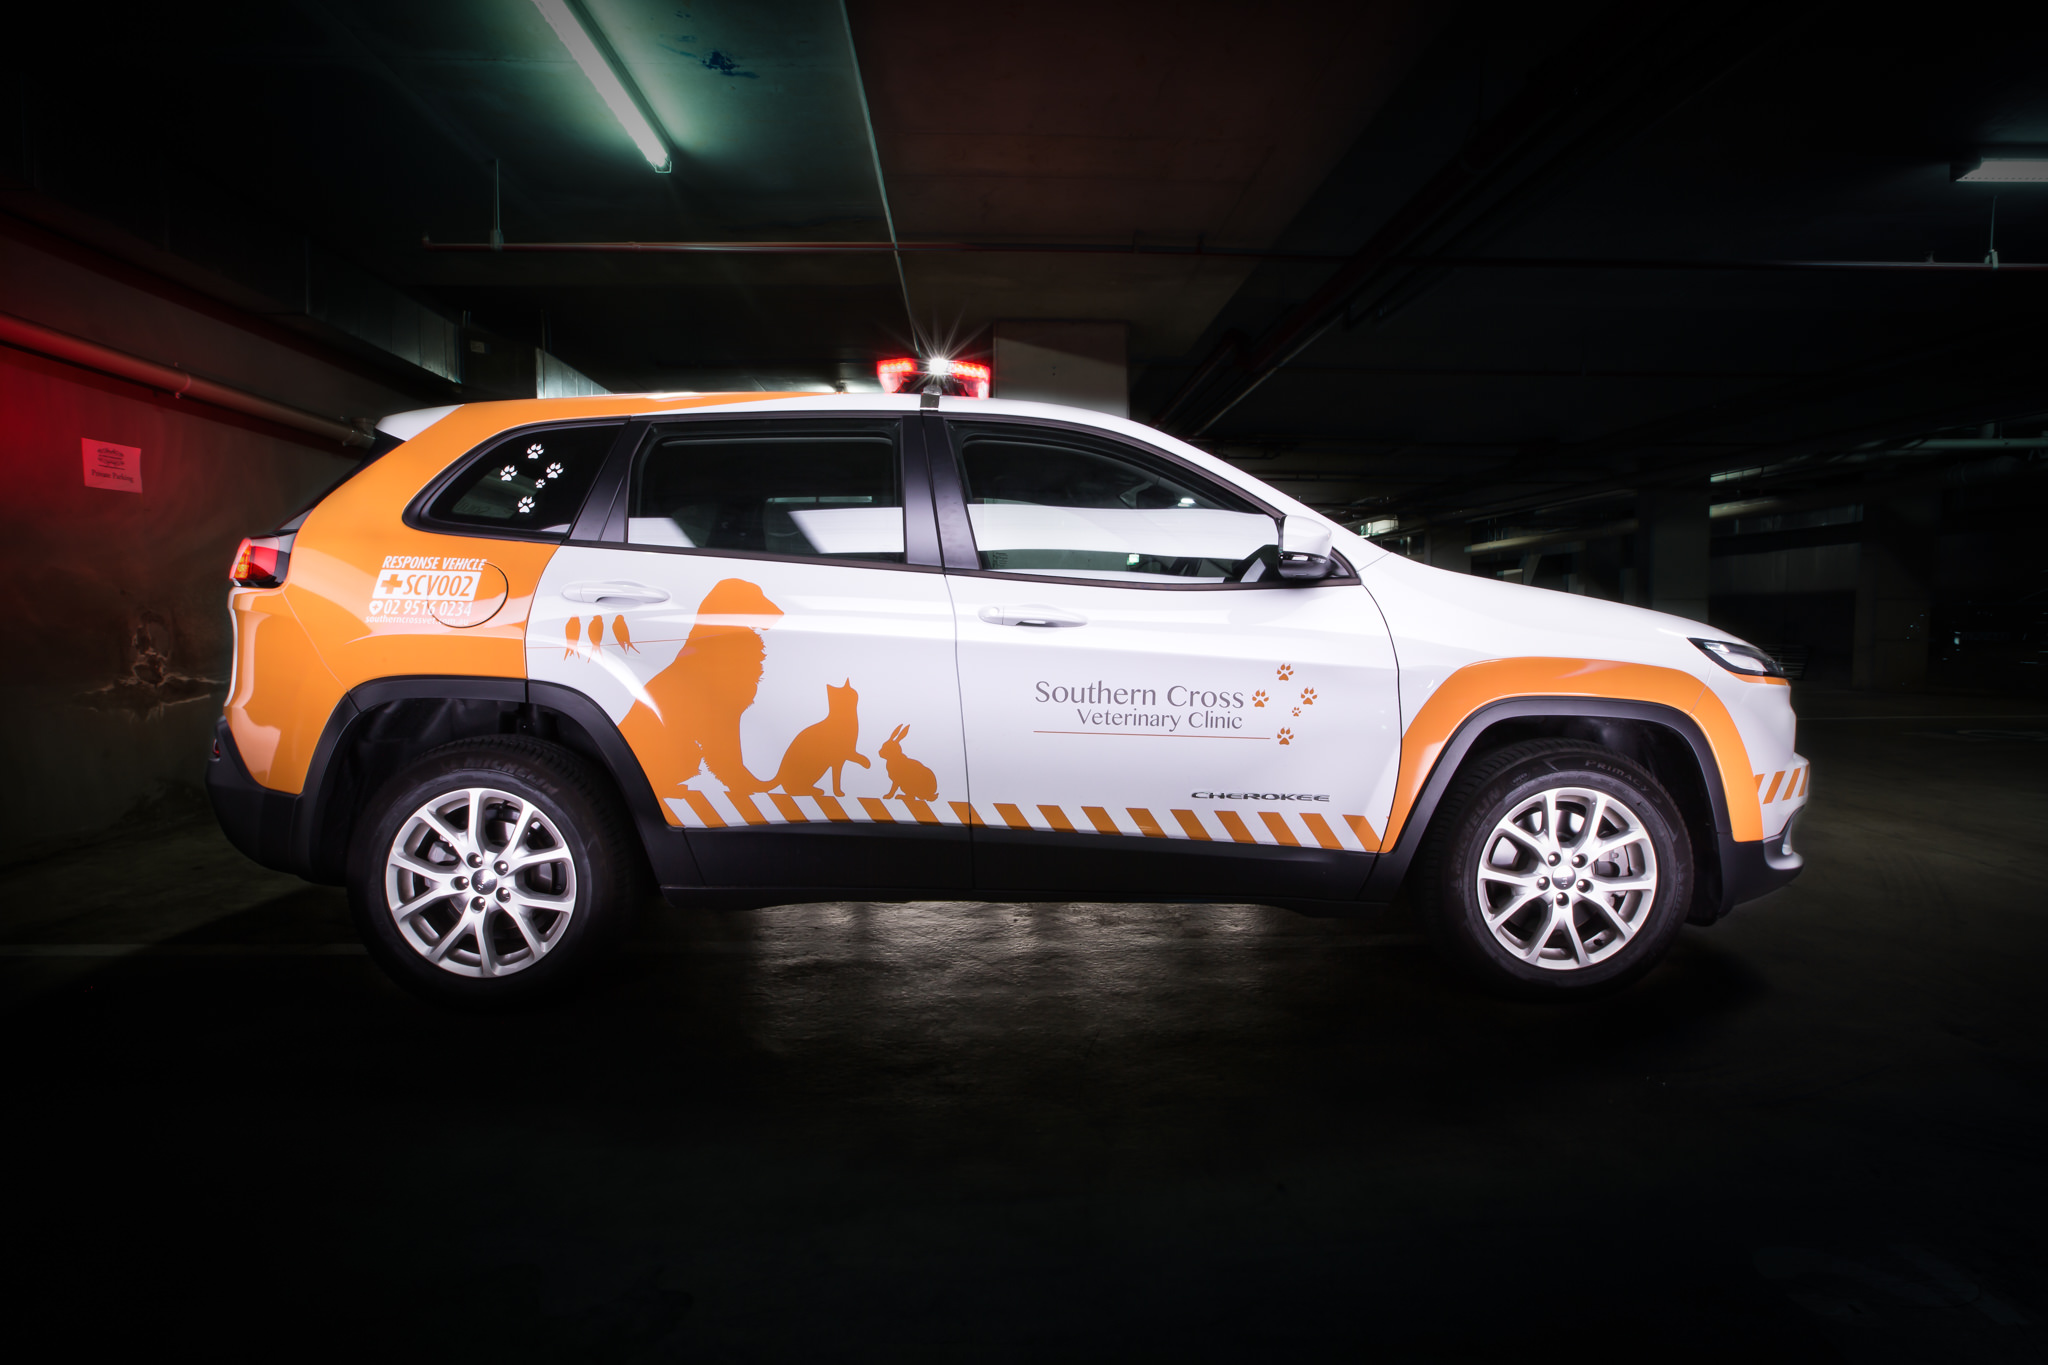 Southern Cross Vet Second Response Vehicle, Jeep Cherokee - Car Photography